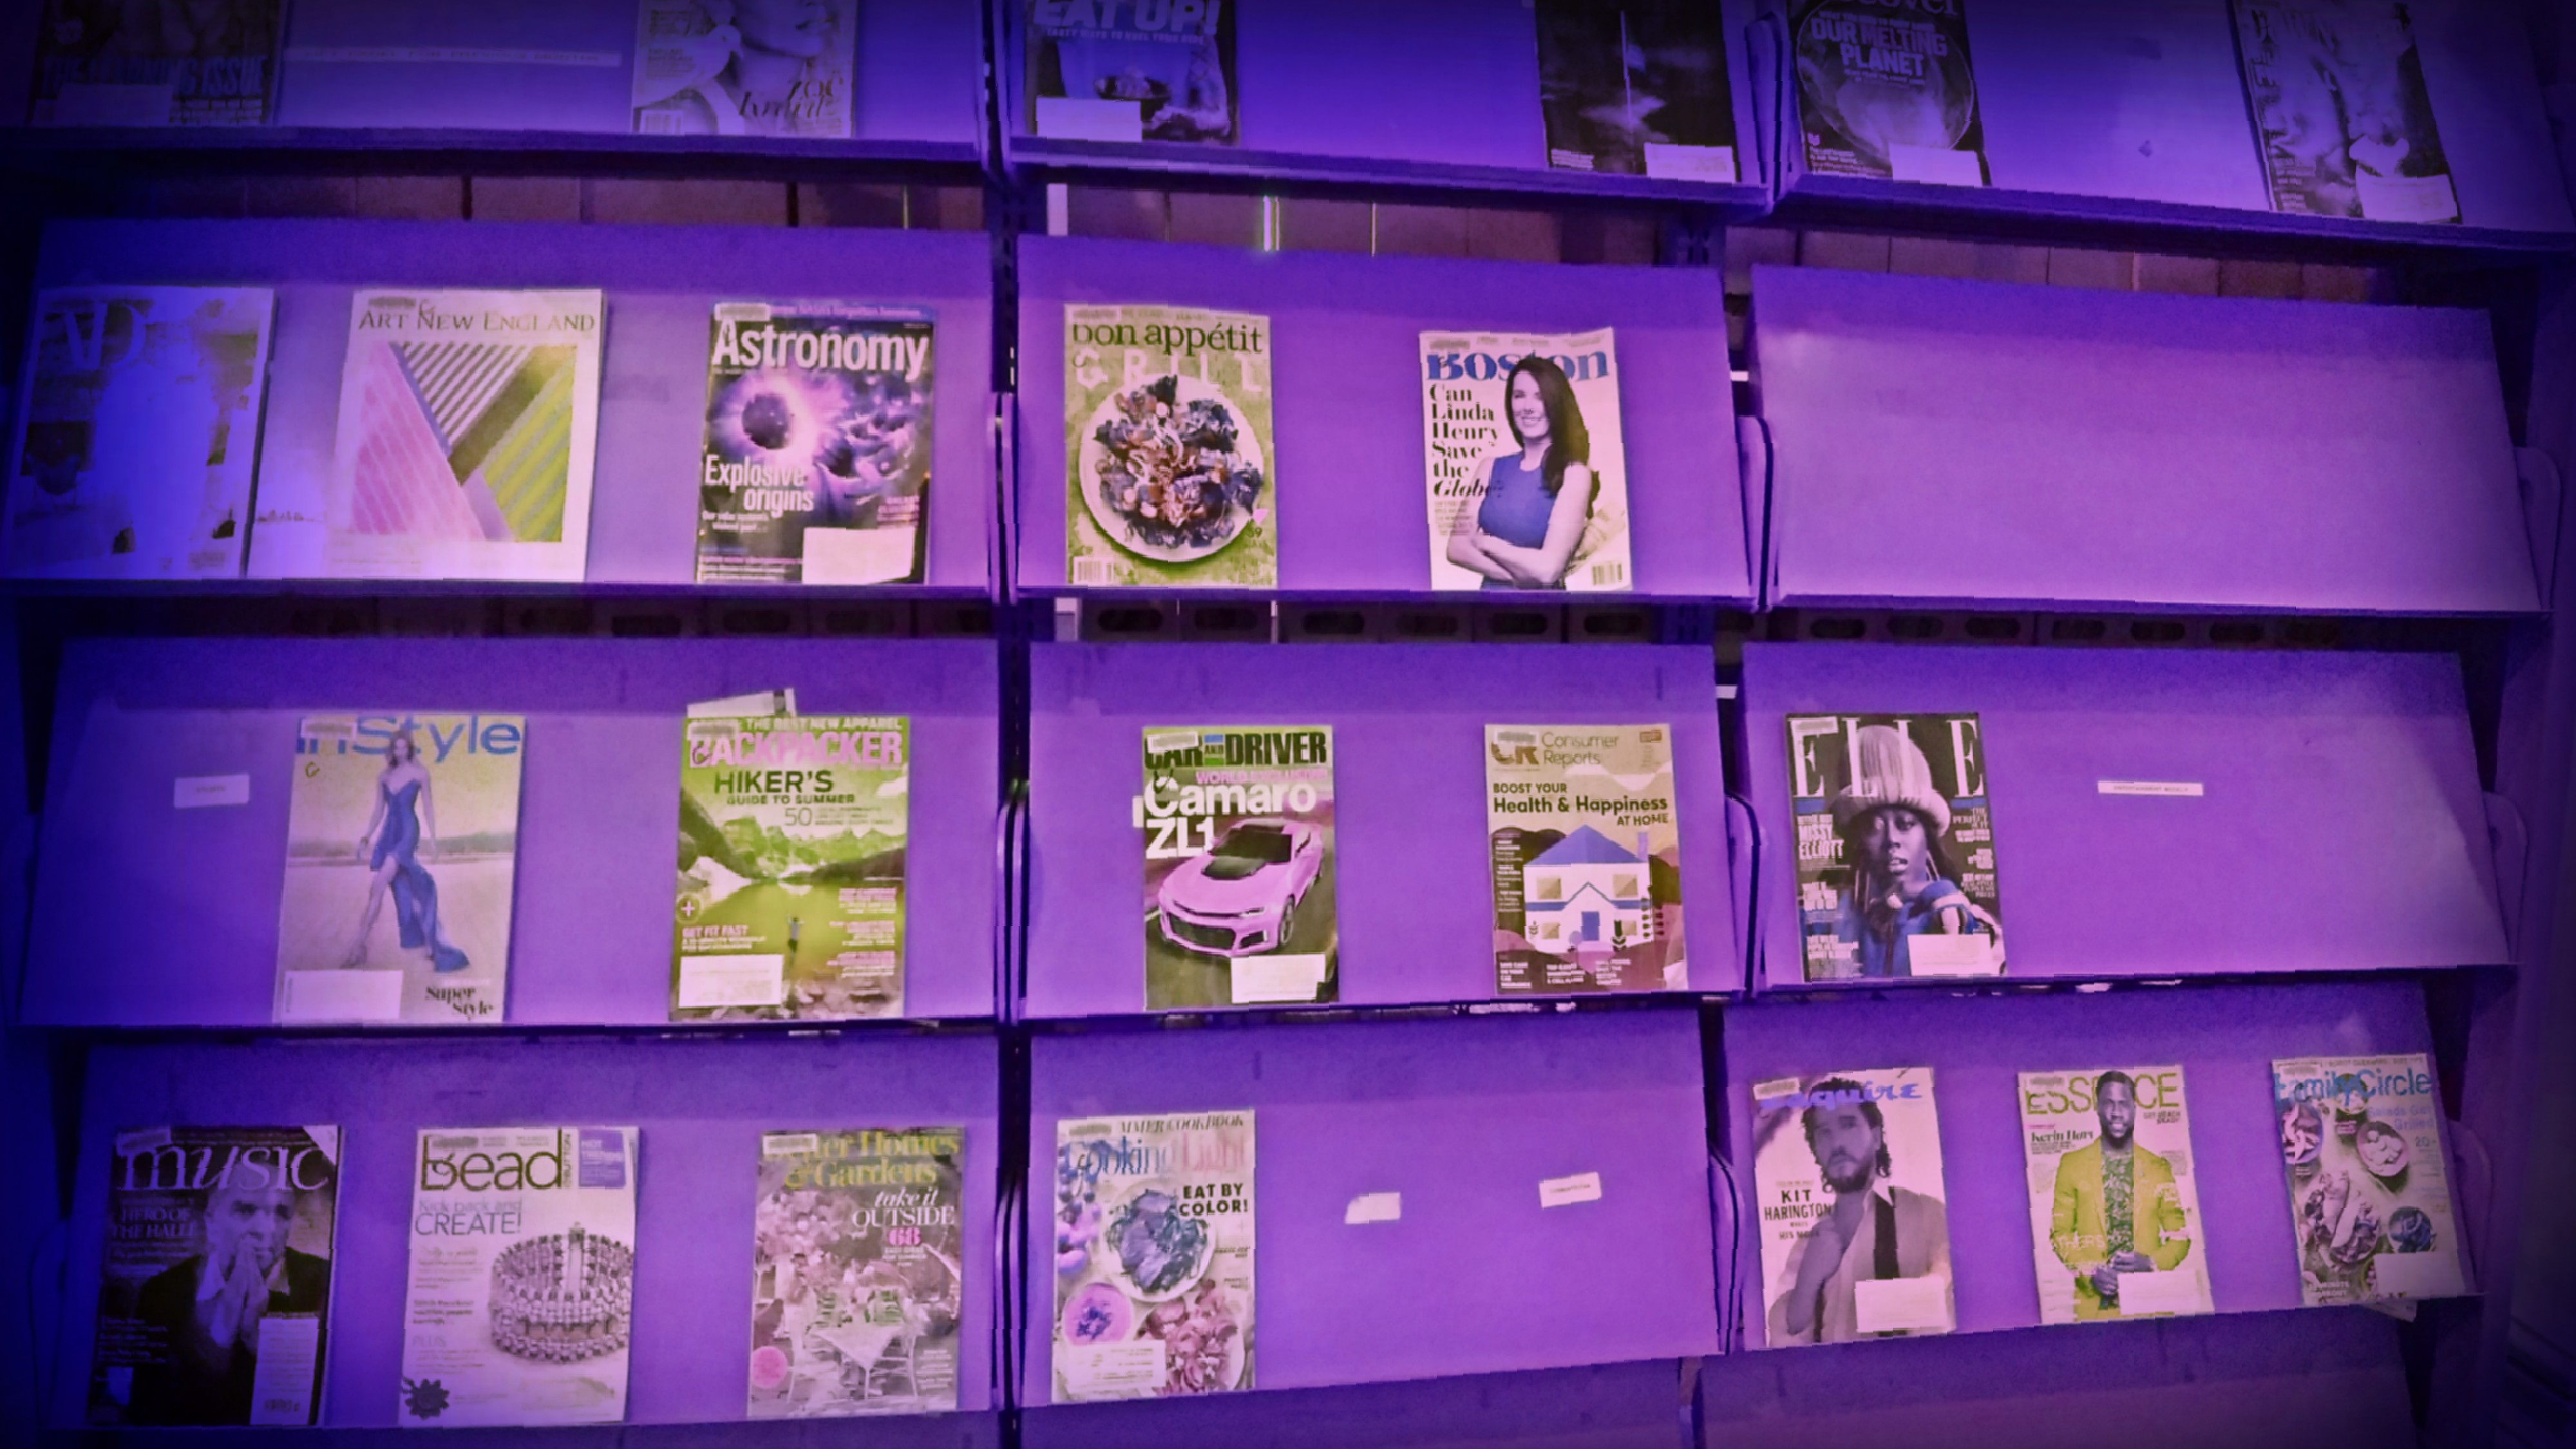 Picture of Periodicals in the library on display